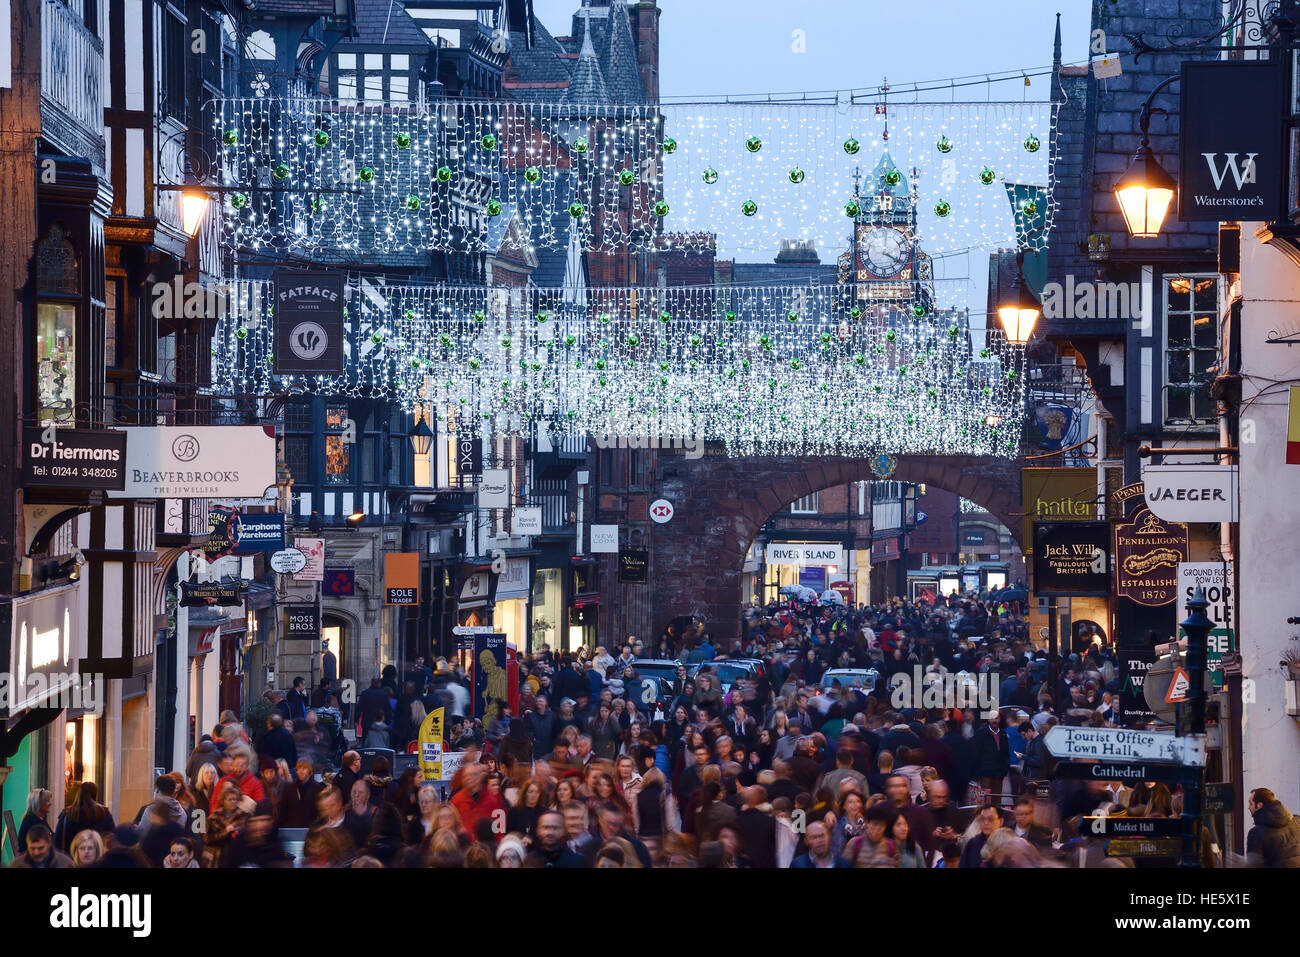 Chester, UK. 17th December 2016. Christmas shoppers filling Eastagte Street in the city centre. ©Andrew Paterson - Stock Image